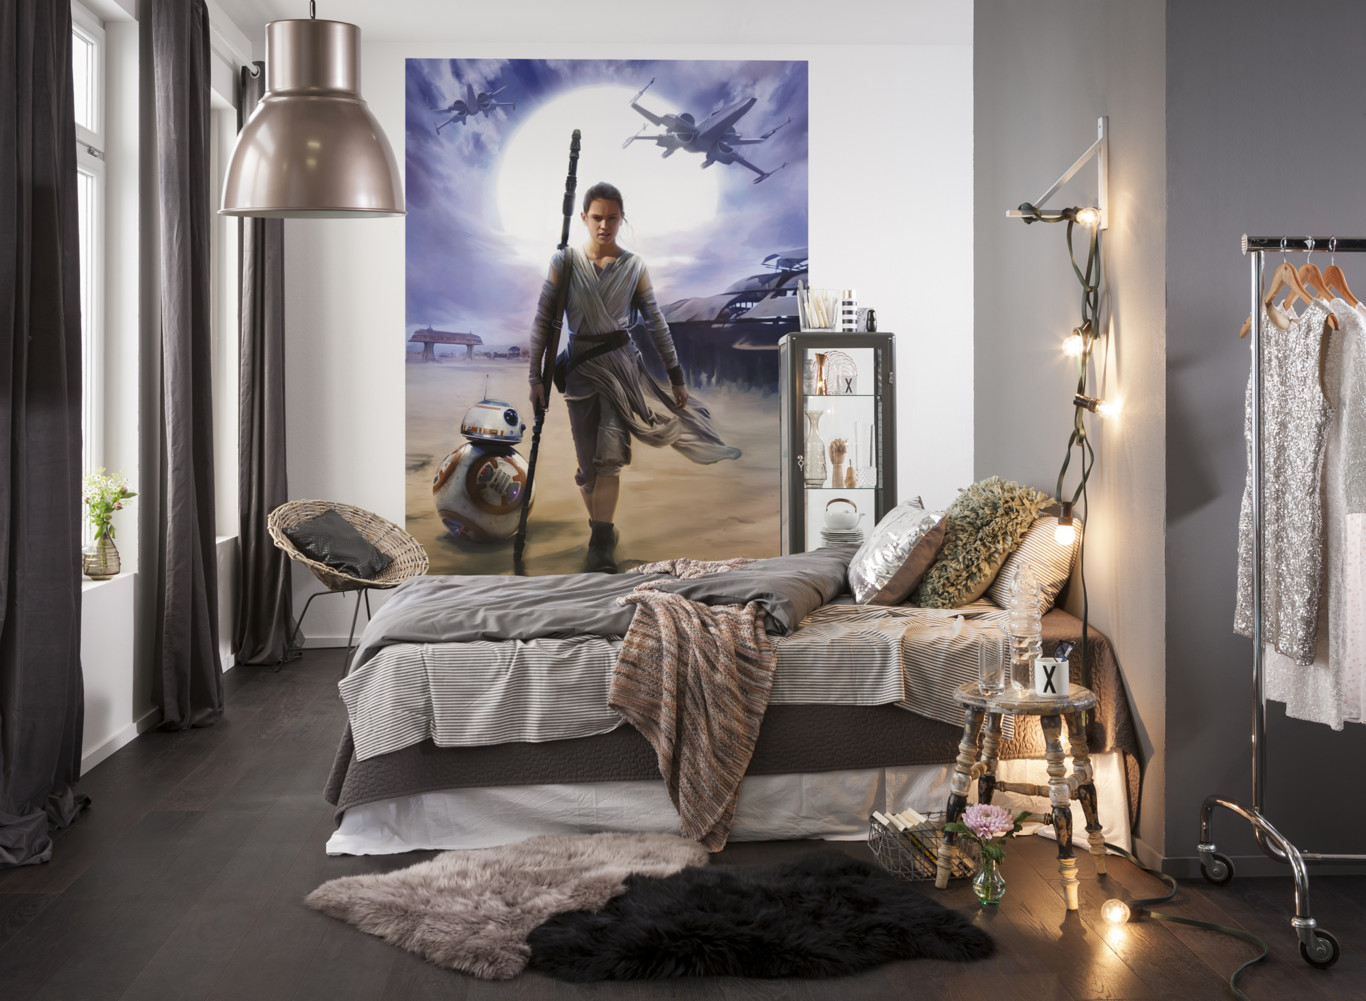 Star Wars Bedroom Decorations Inspiration For Childrens 2